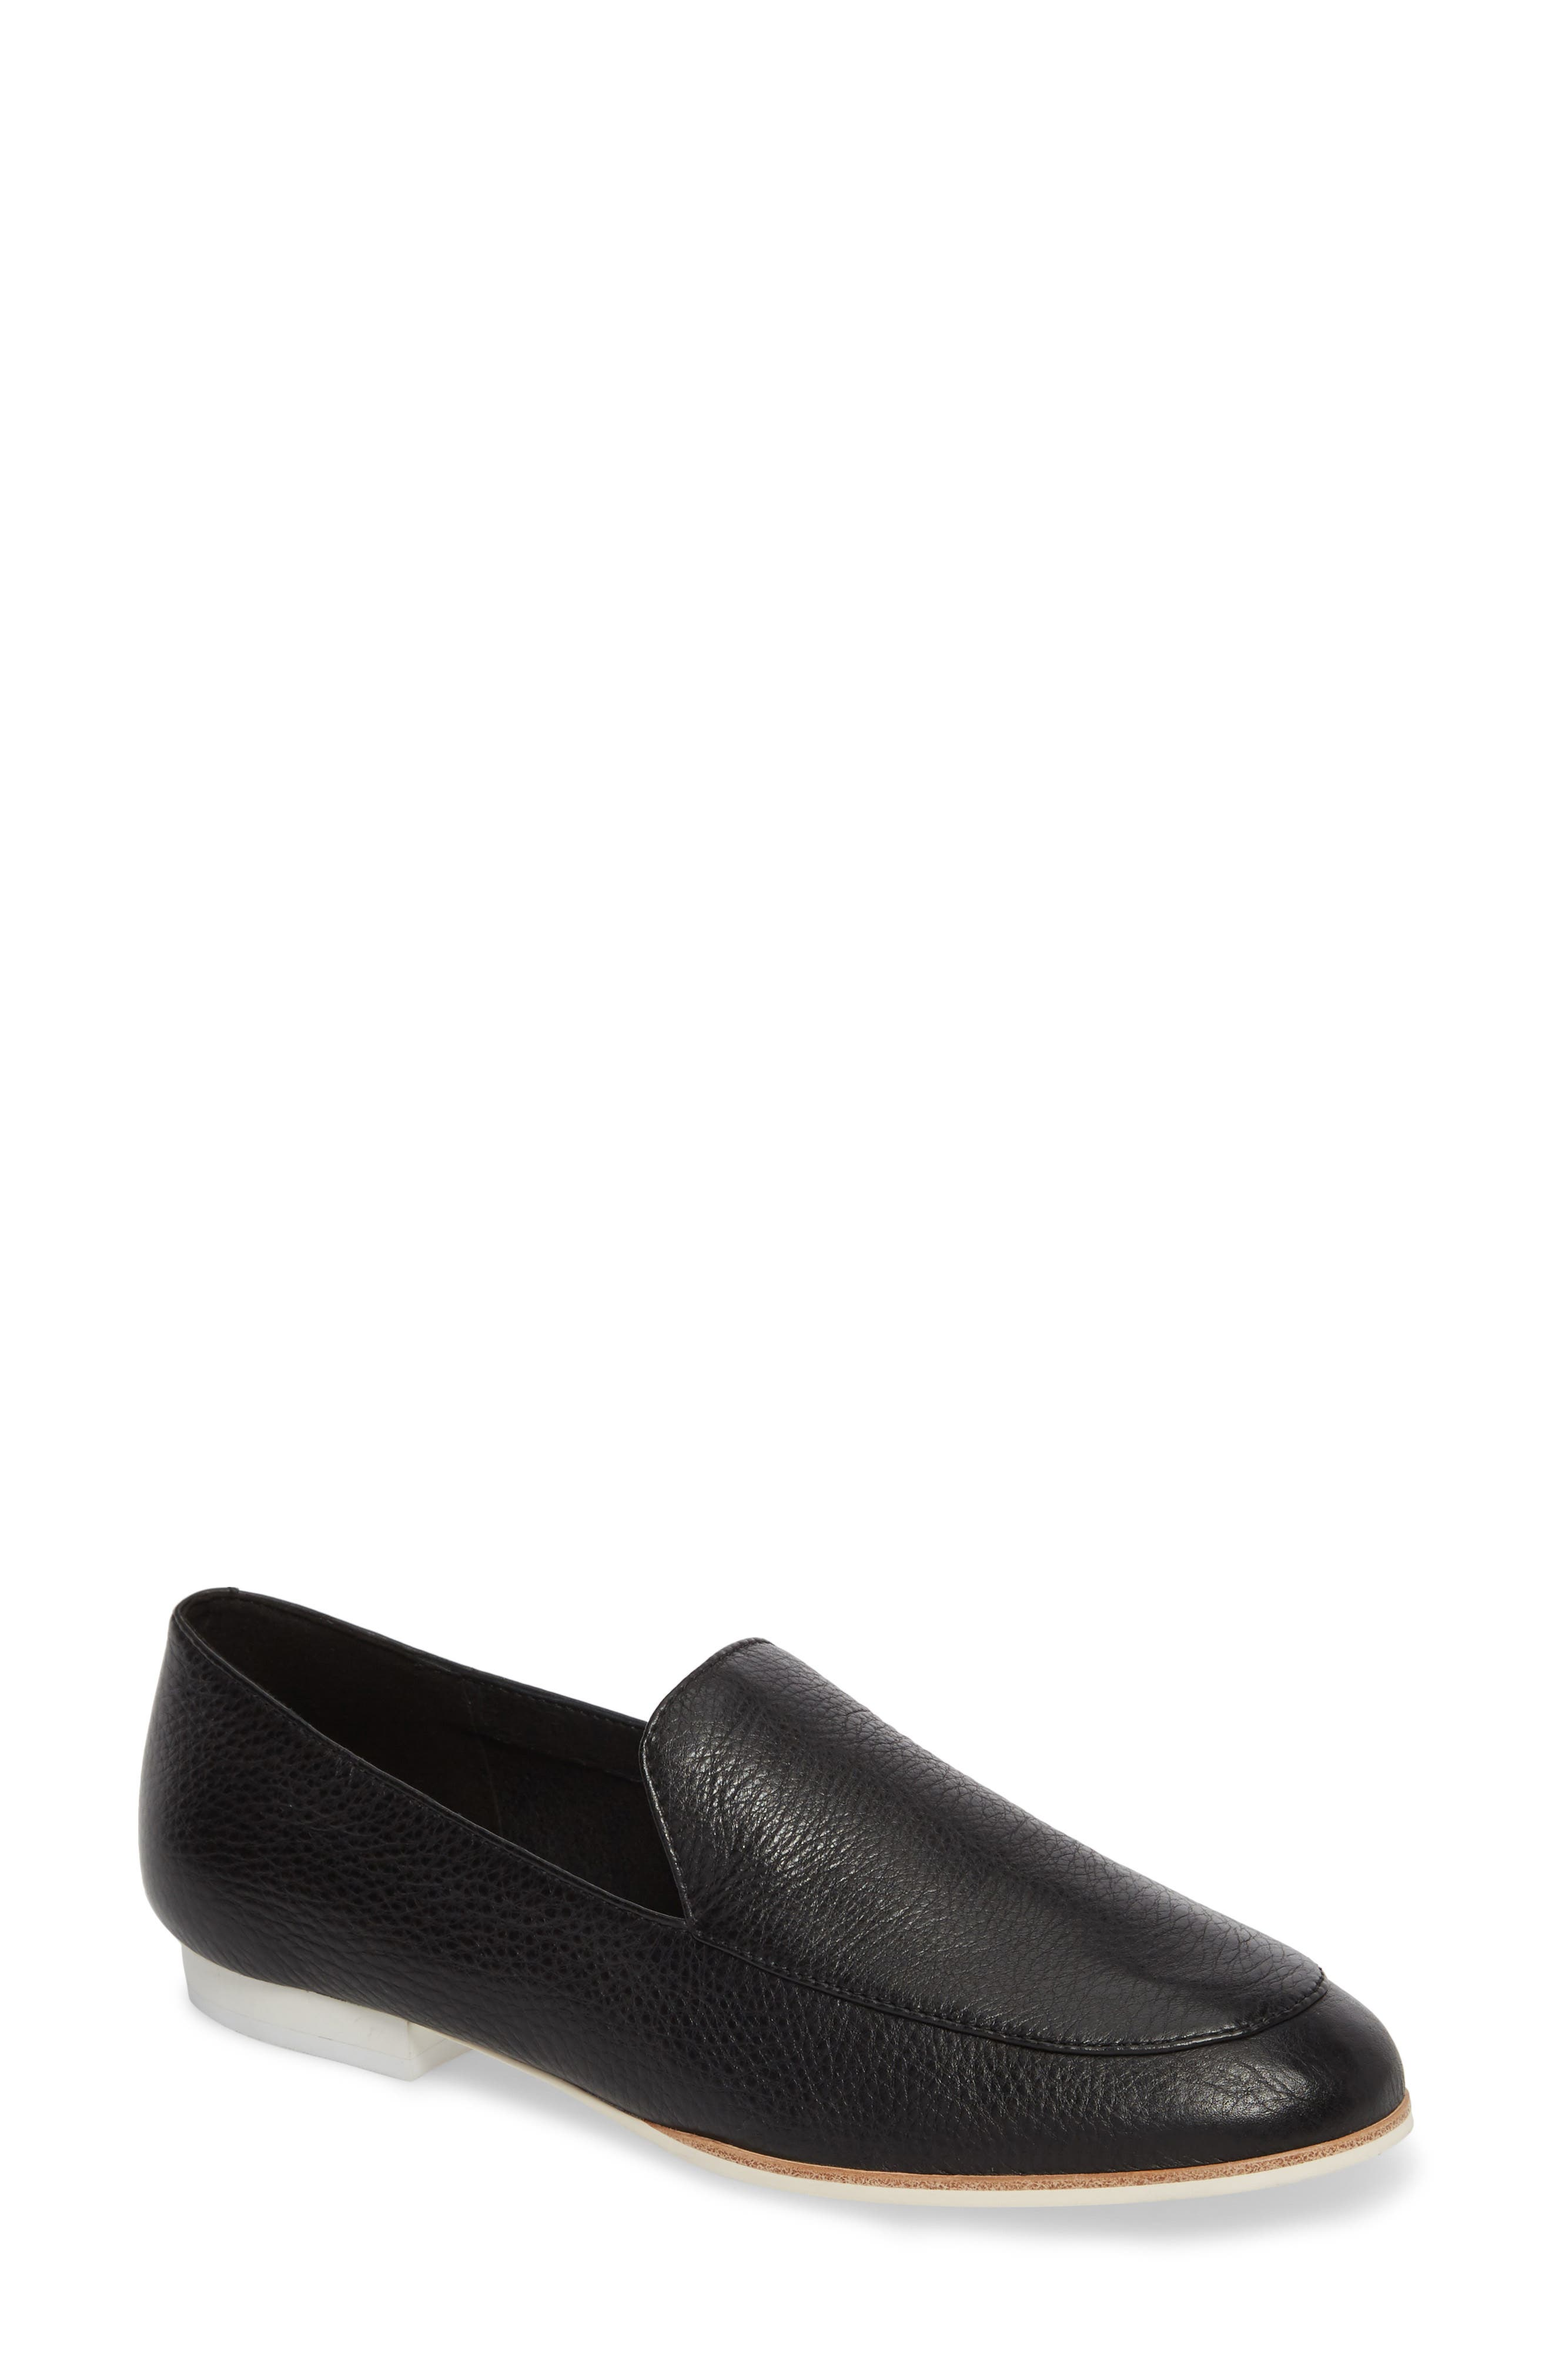 Westley Welt Loafer,                             Main thumbnail 1, color,                             Black Leather